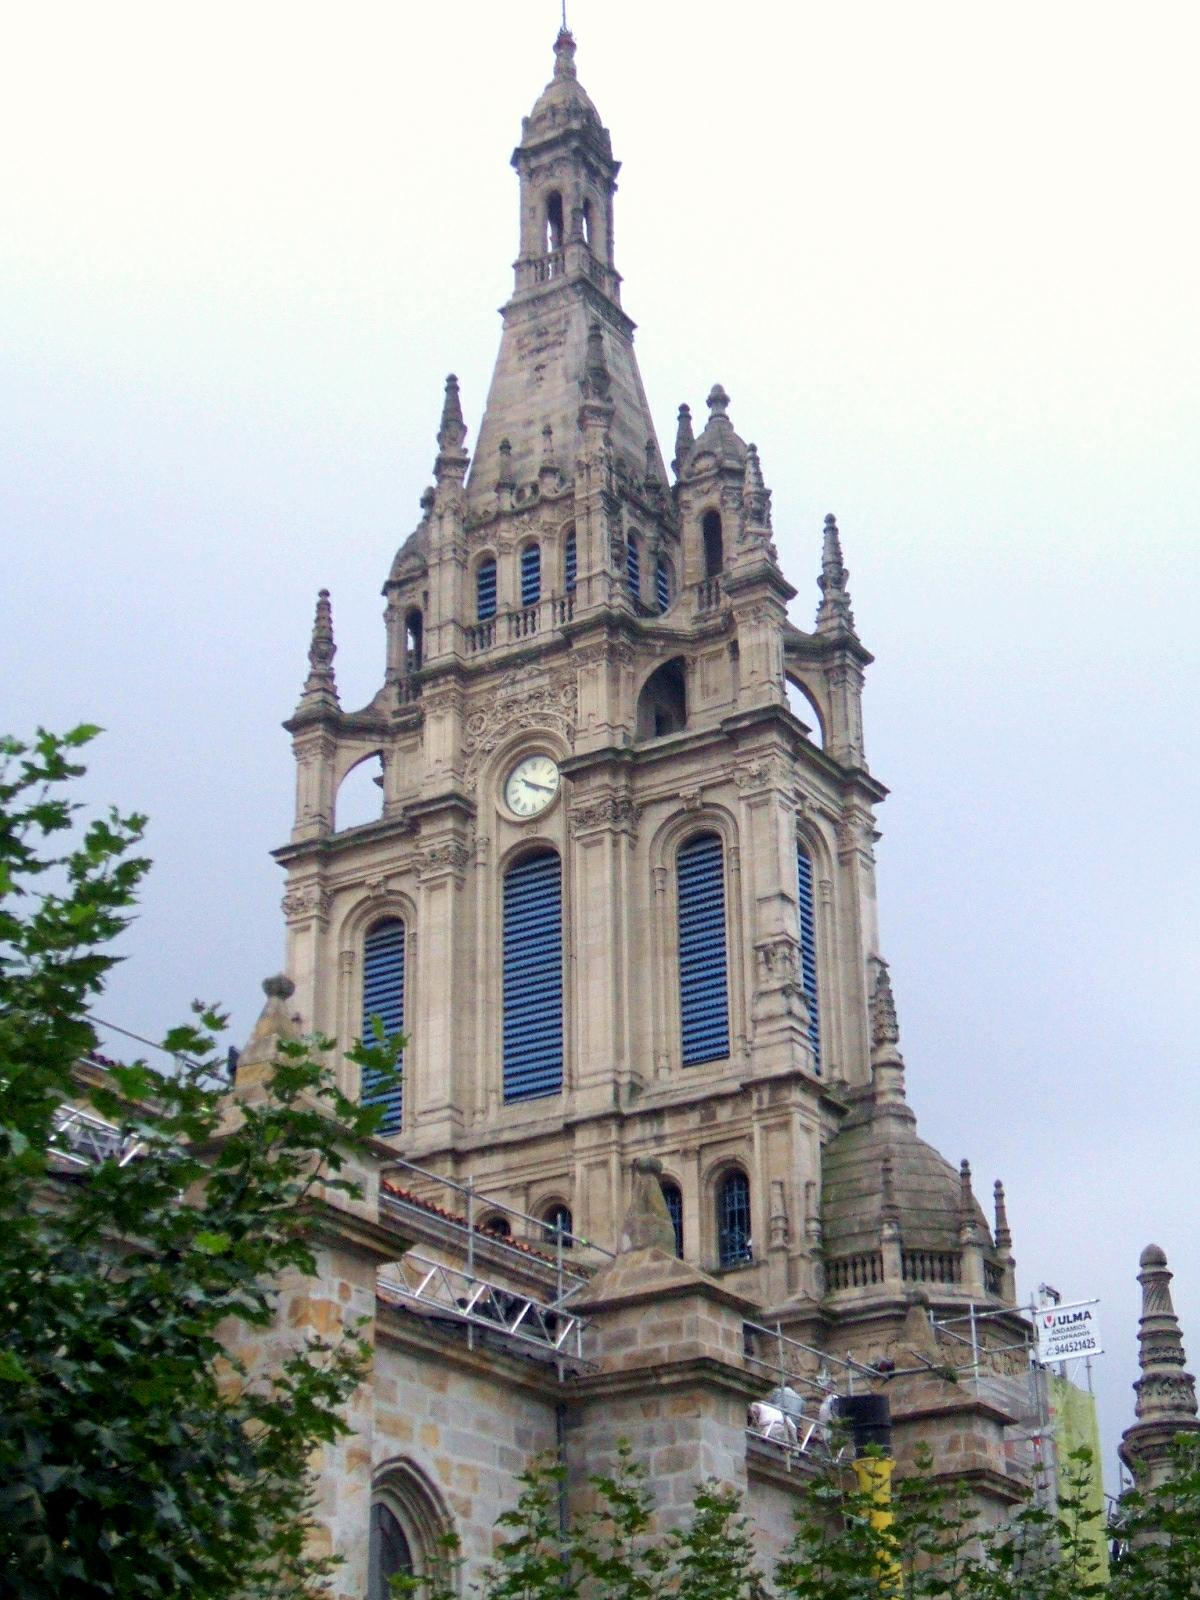 https://upload.wikimedia.org/wikipedia/commons/4/4c/Bilbao_-_Basilica_de_Bego%C3%B1a_12.JPG